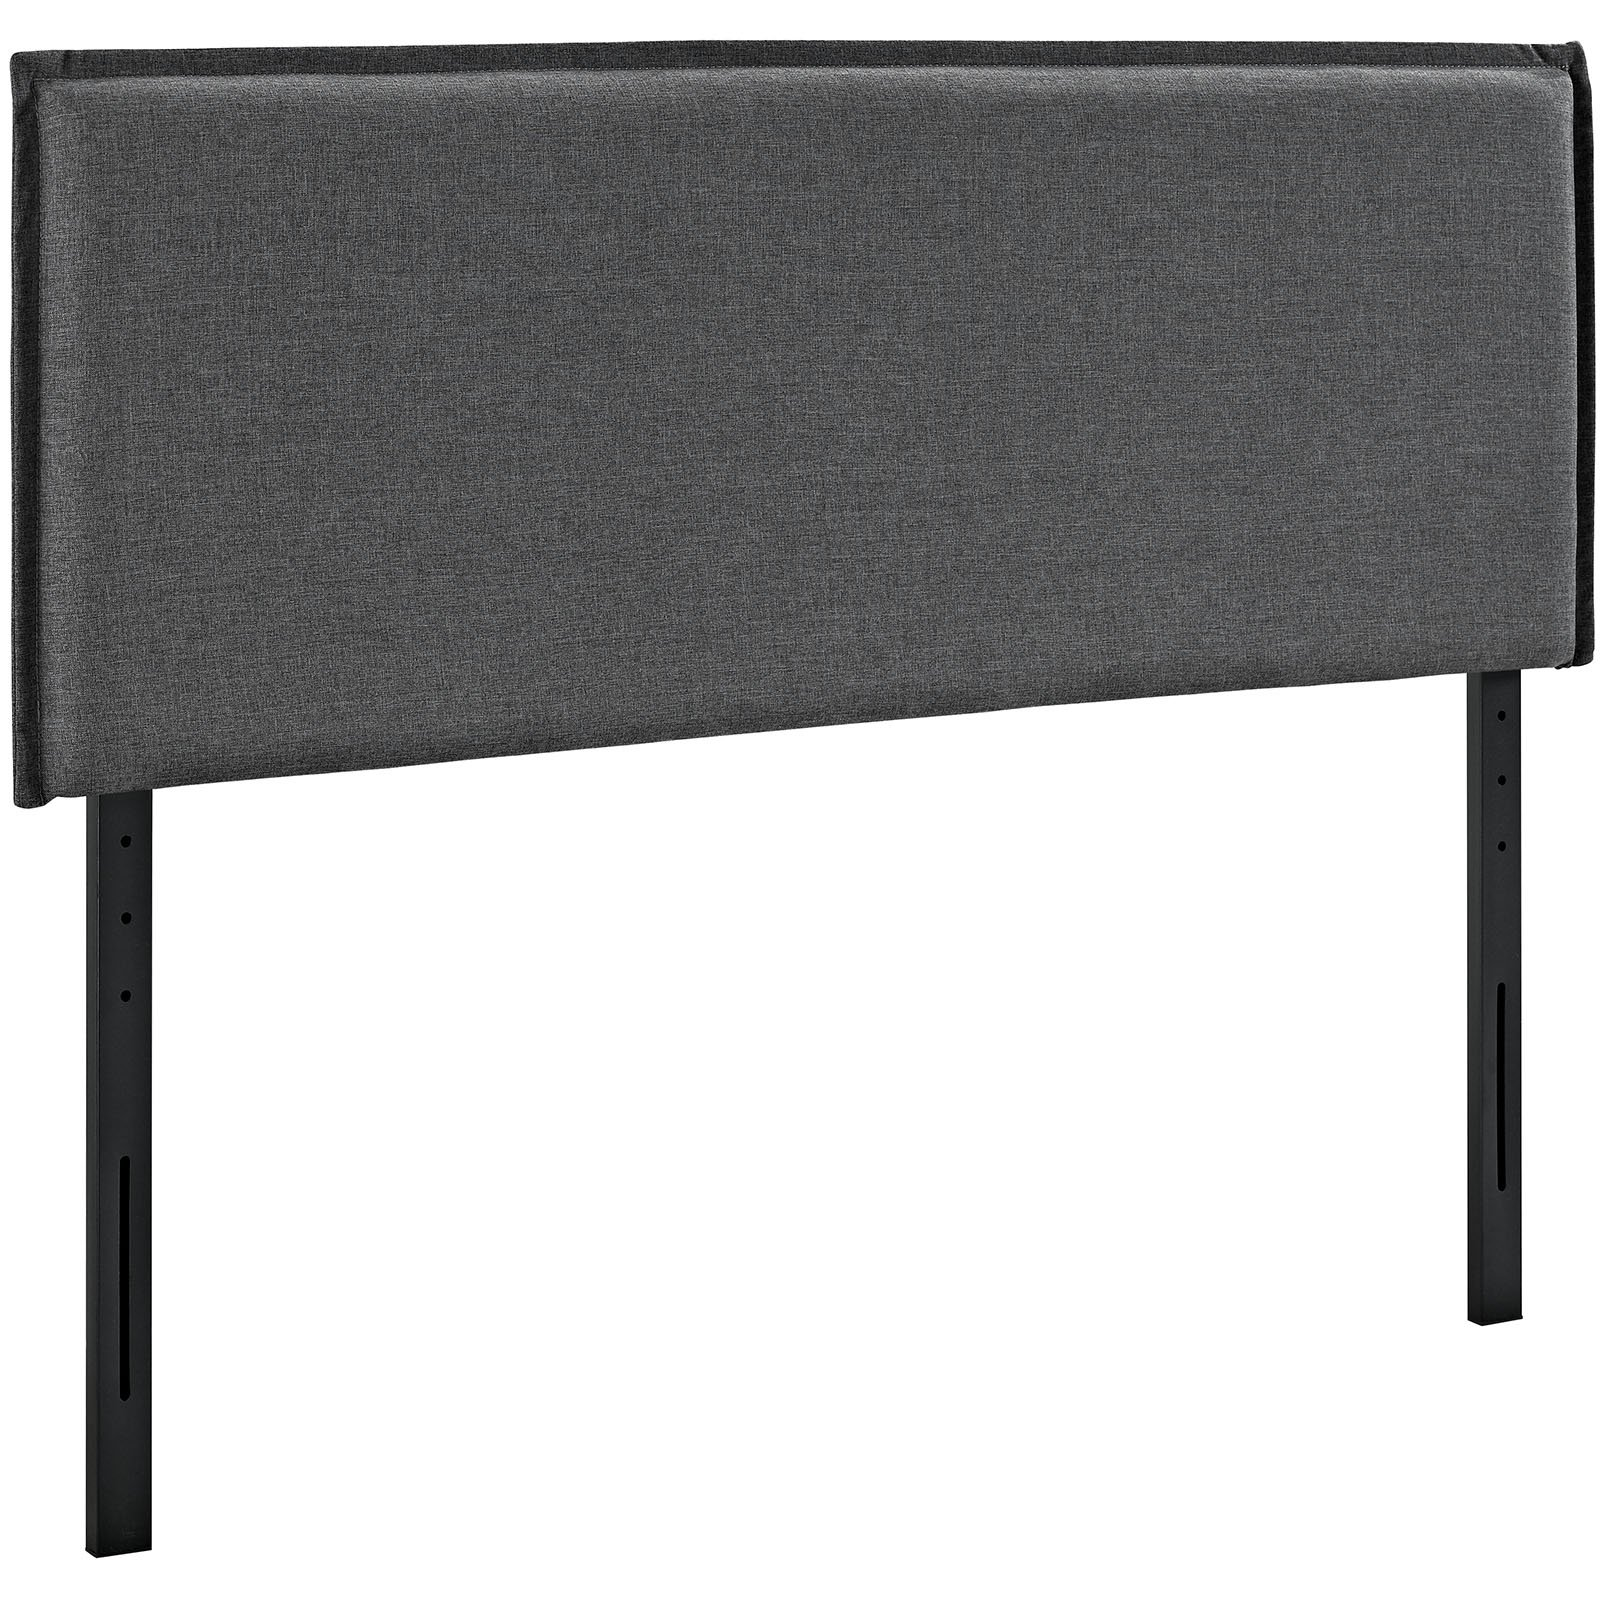 Modway Camille Upholstered Fabric Headboard Full Size With French Seam Stitching In Gray